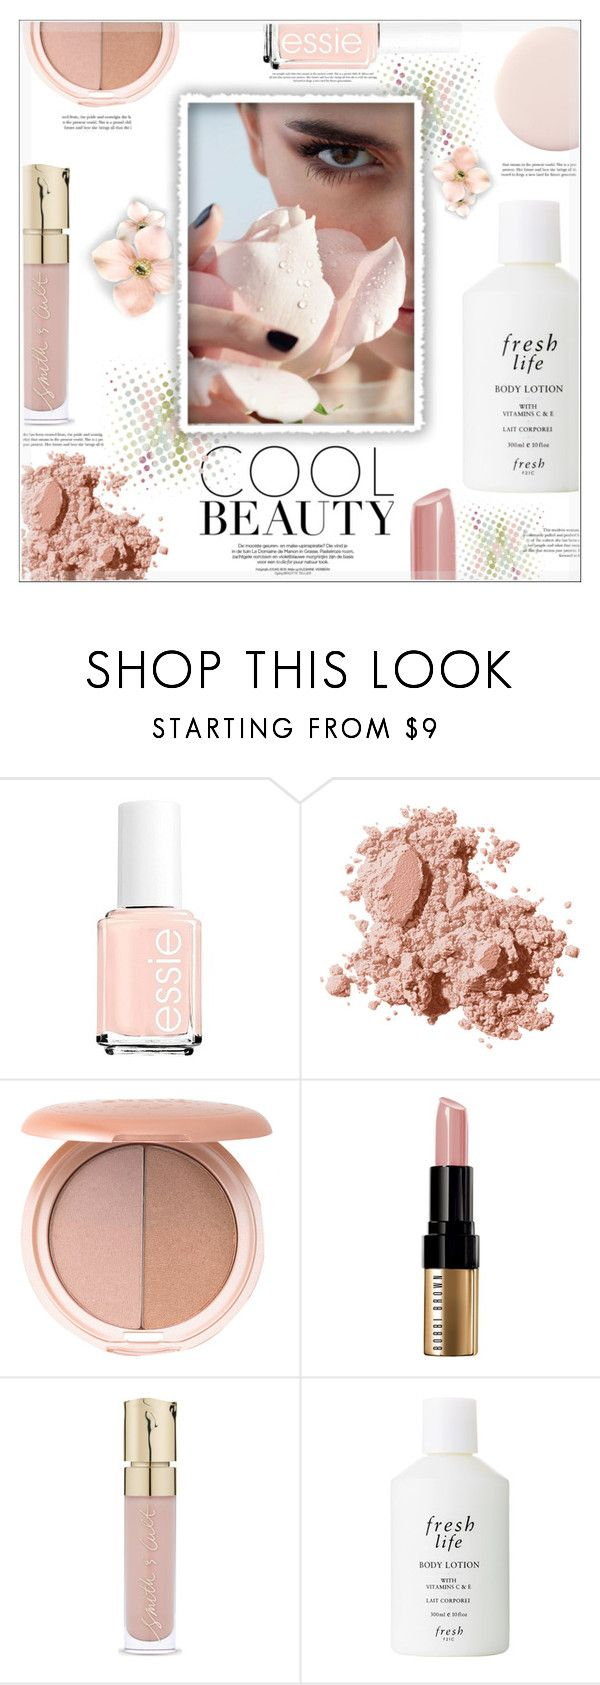 """""""Cool Beauty"""" by suzanne228 ❤ liked on Polyvore featuring beauty, Essie, Bobbi Brown Cosmetics, Stila, Smith & Cult and Fresh"""